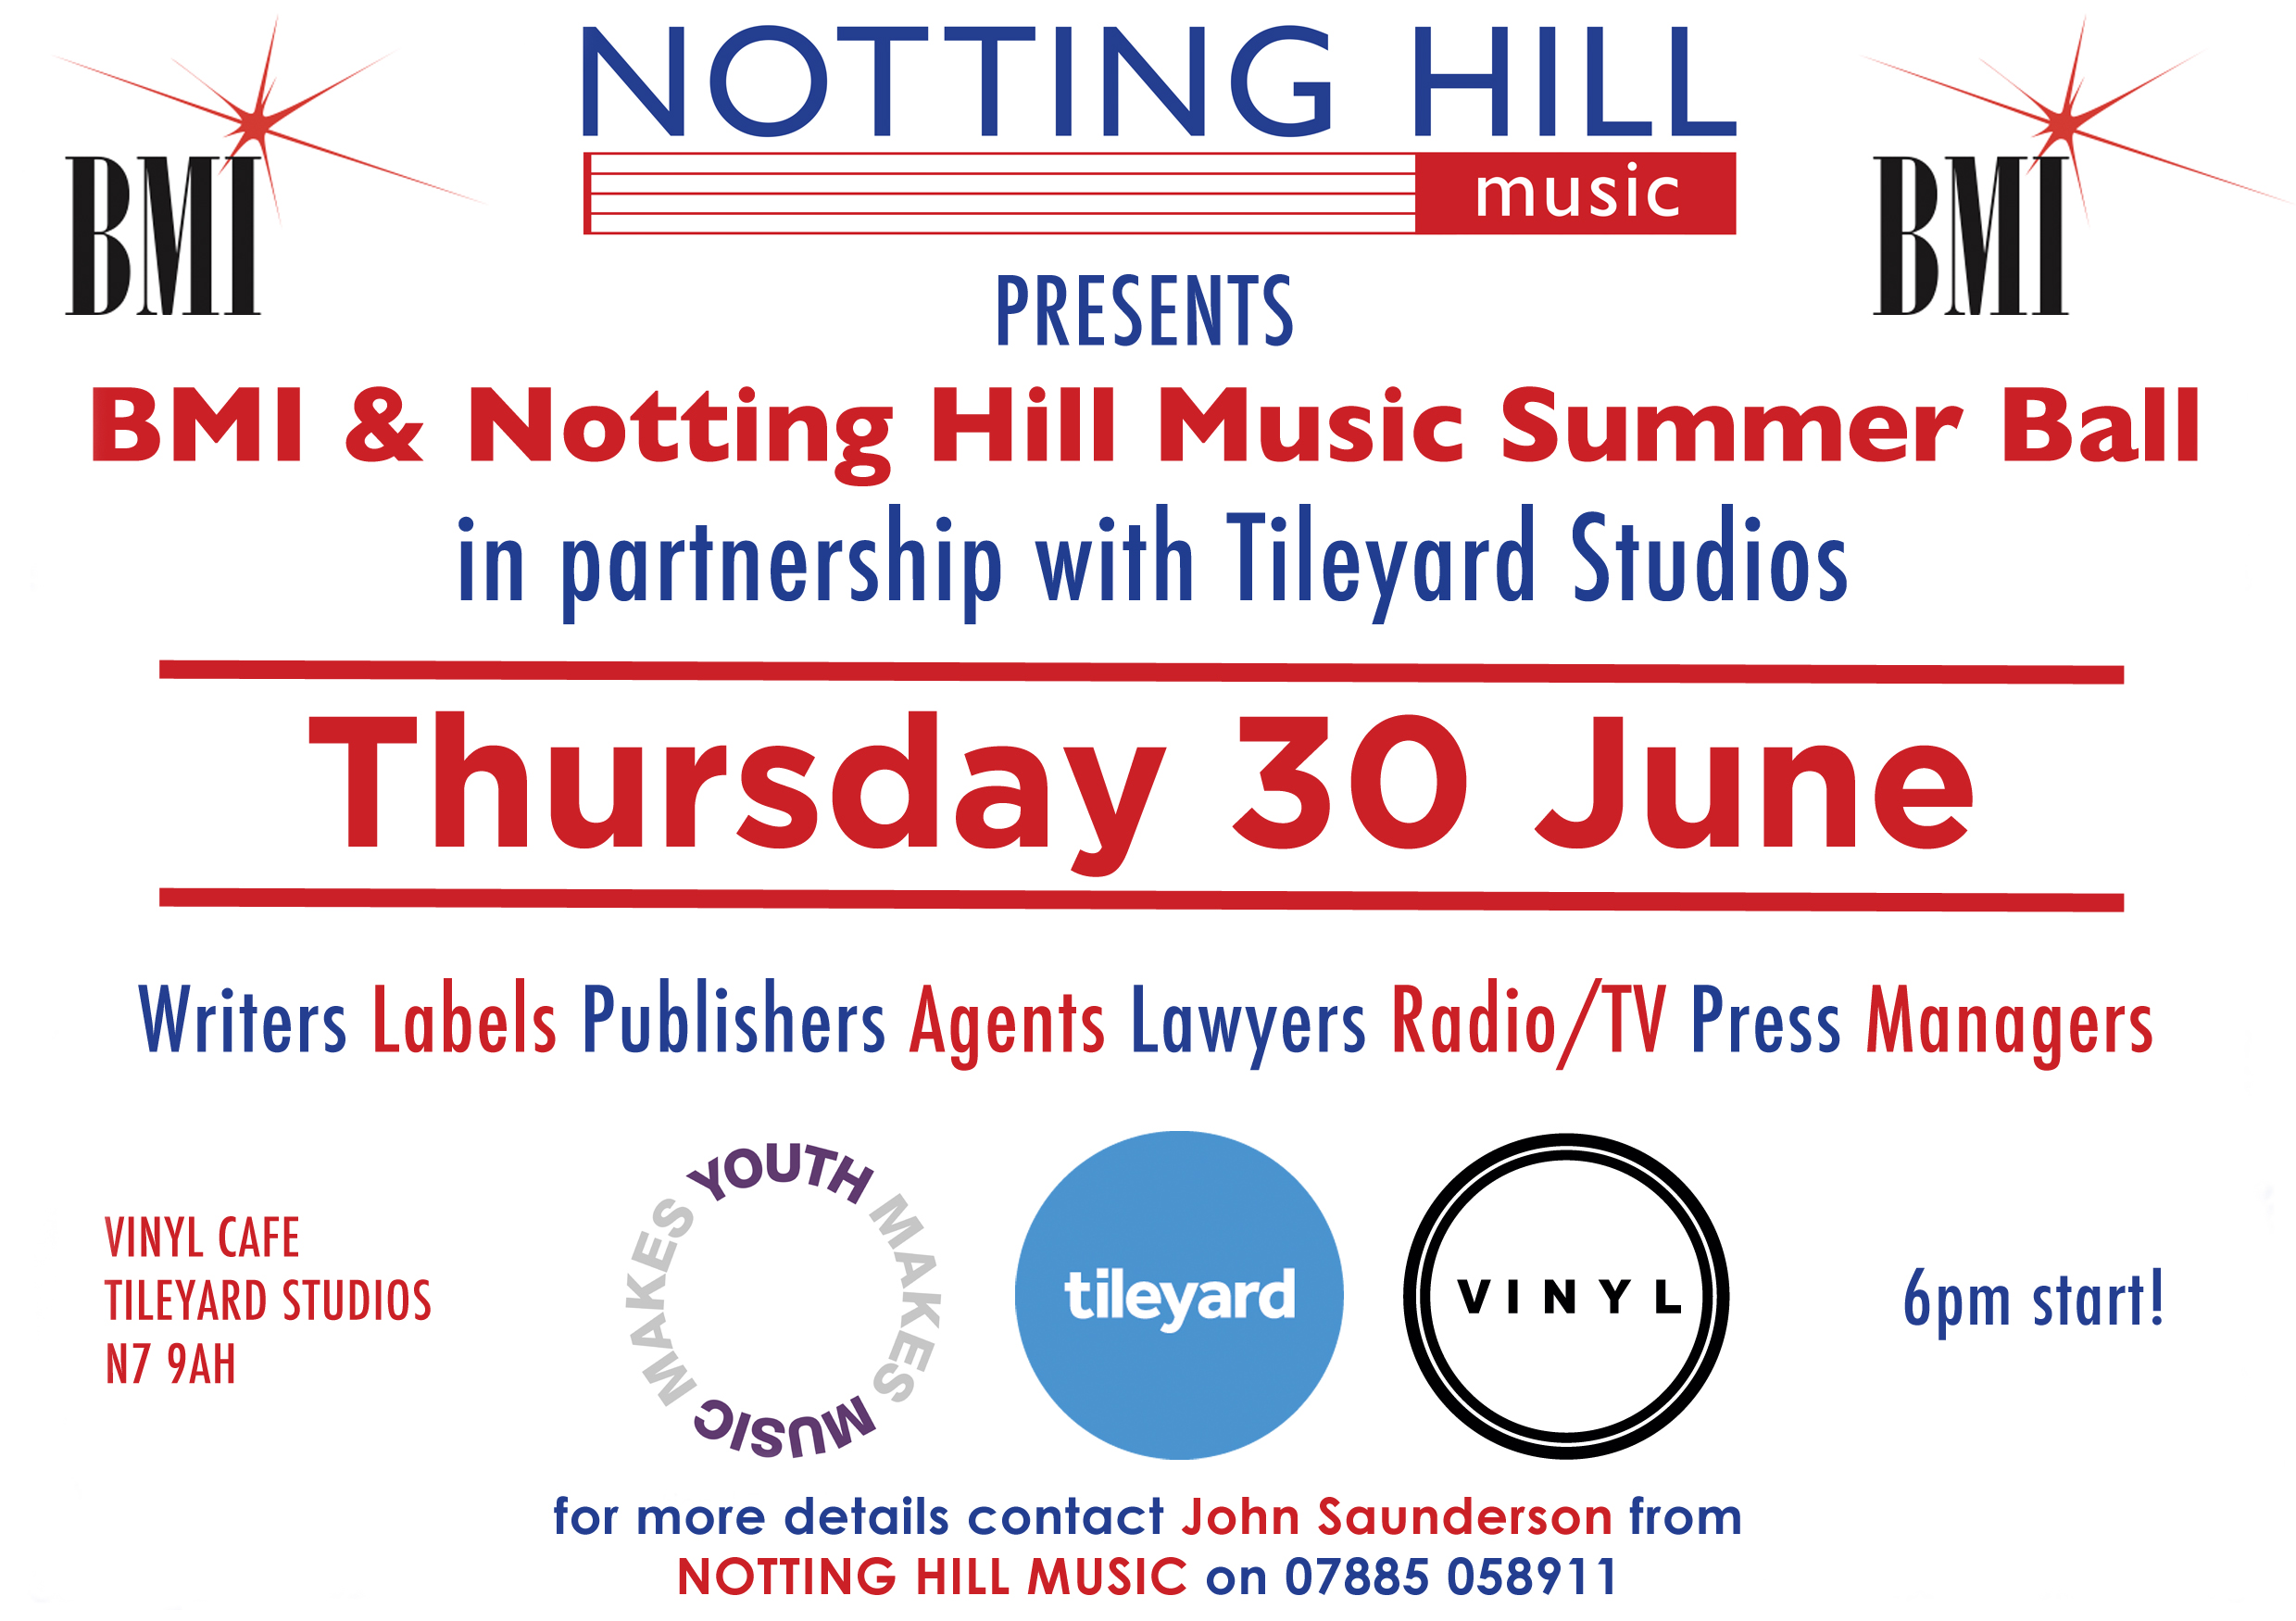 BMI & Notting Hill Music's Networking Evening – TOMORROW!